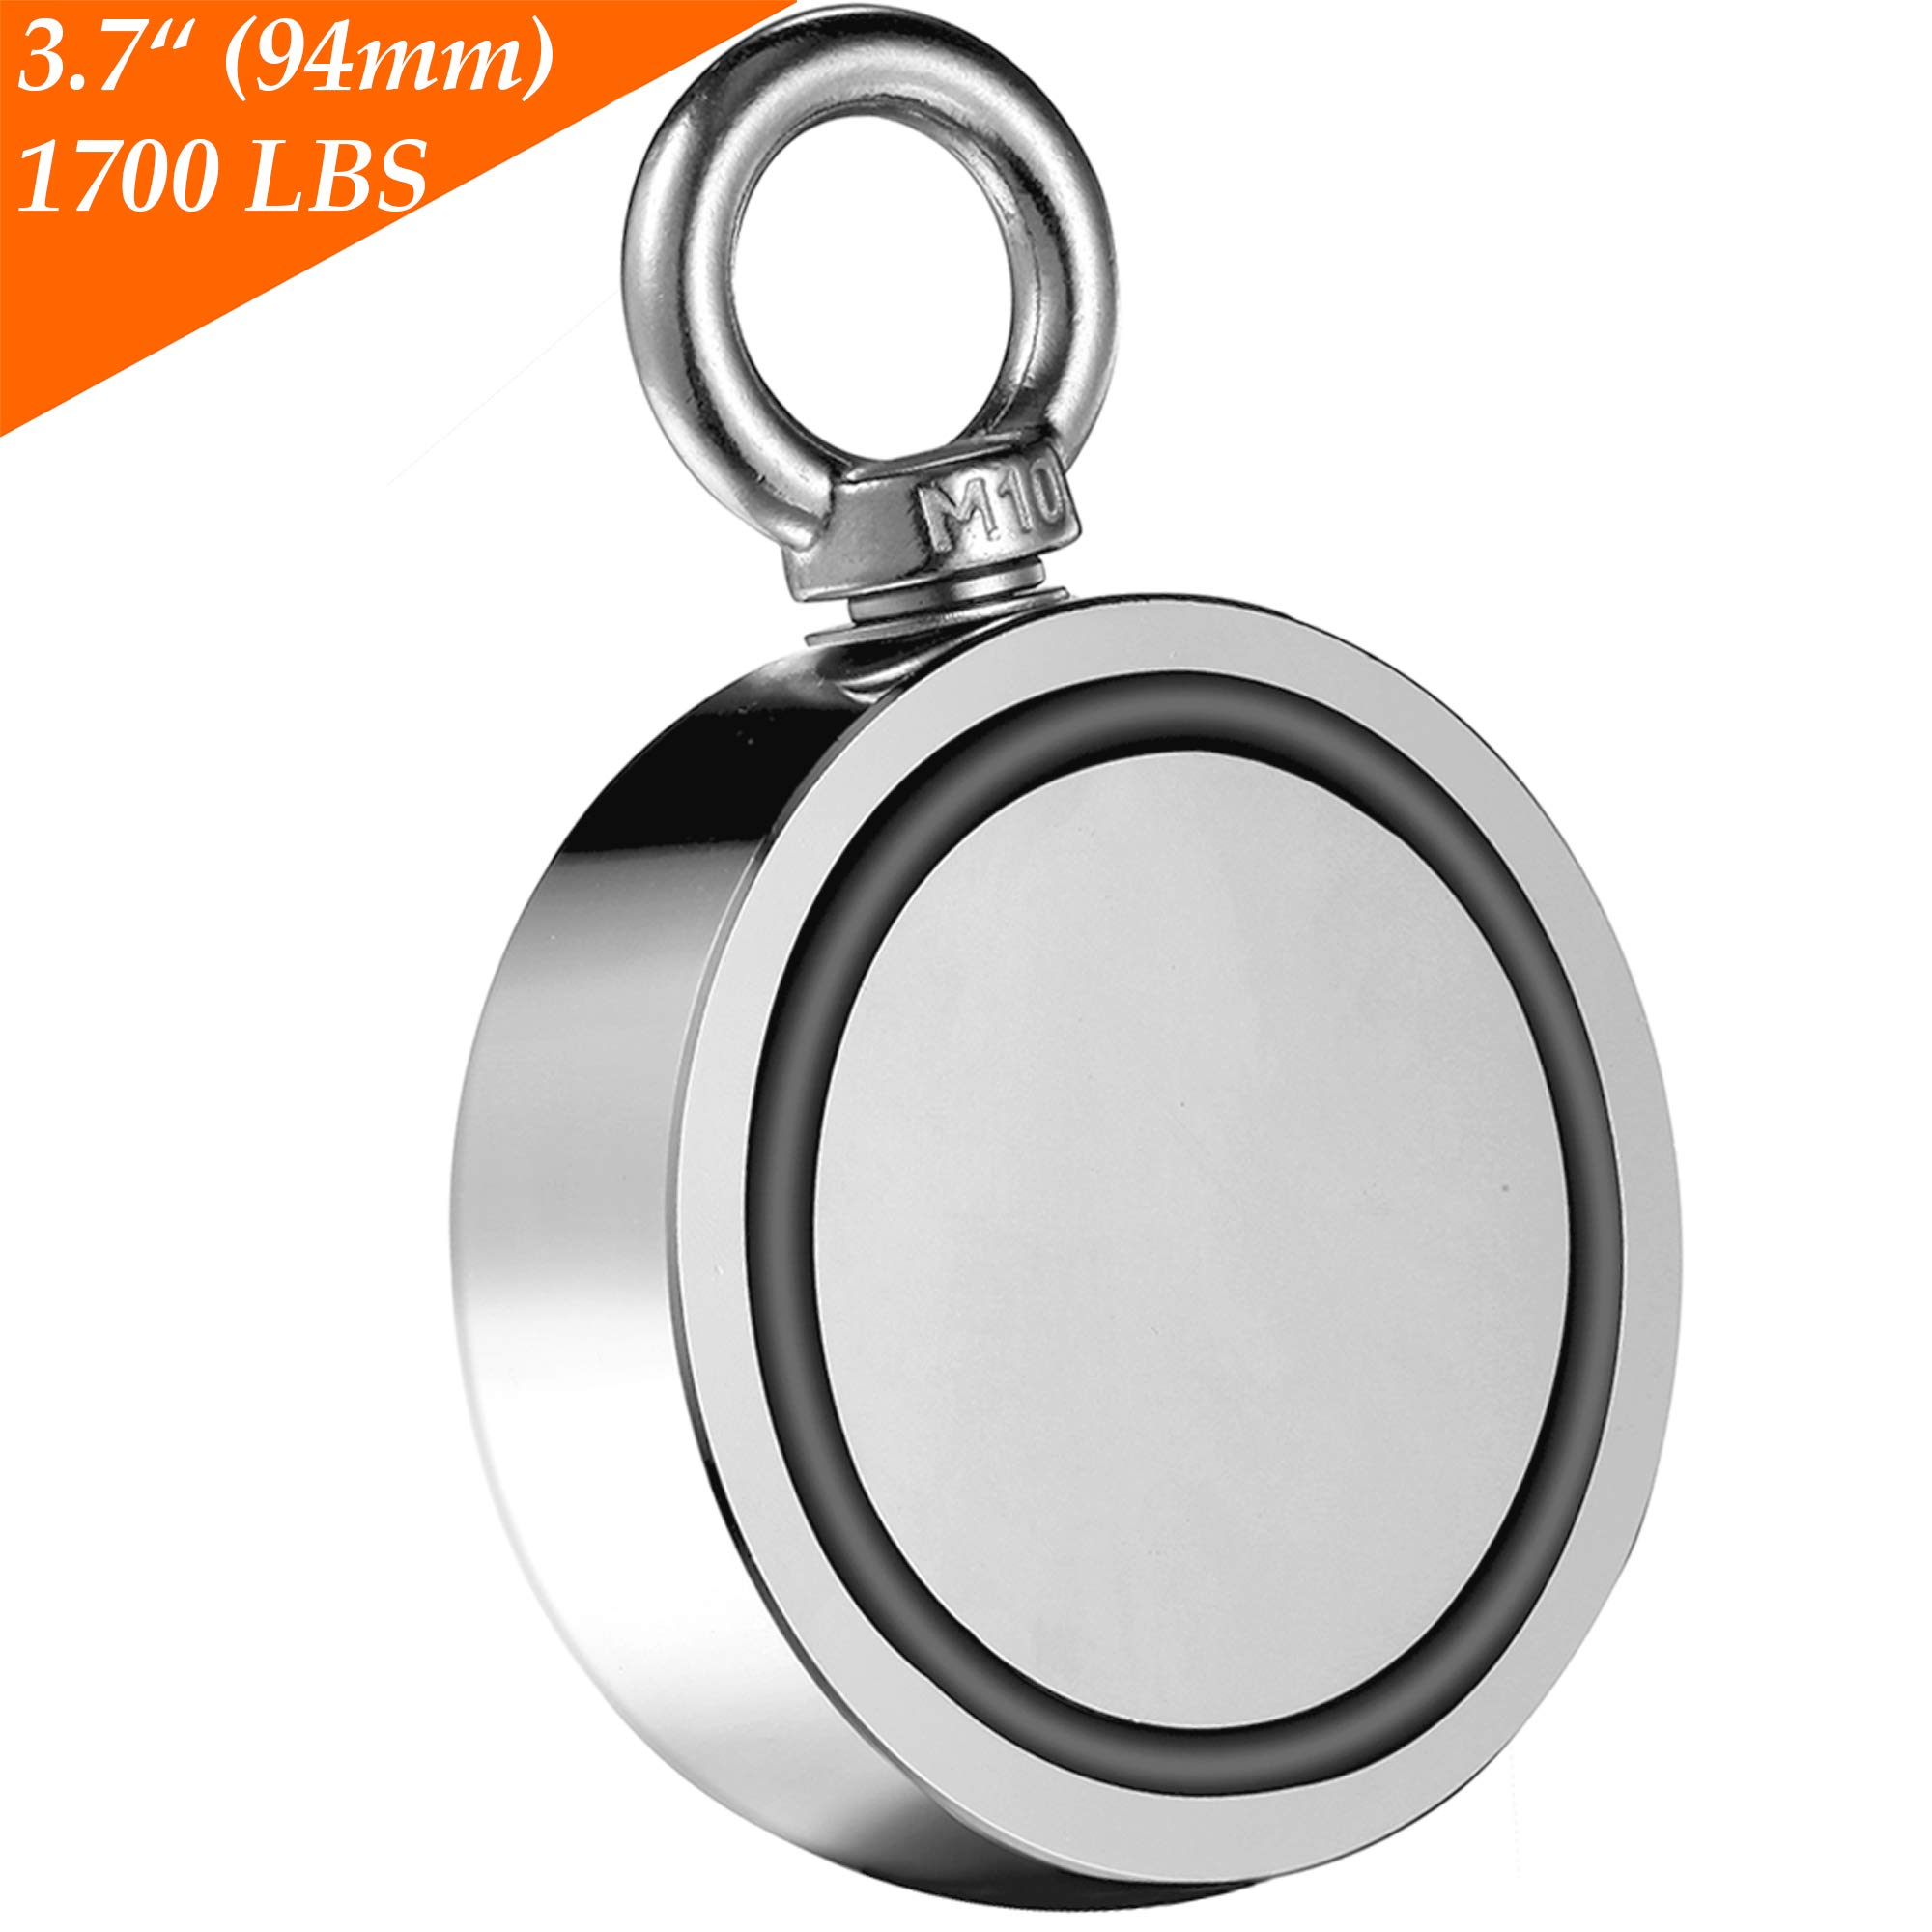 Wukong Fishing Magnet Double Sided Neodymium Magnet with Eyebolt, Combined 1700 LBS Pulling Force Super Strong Magnet for Magnetic Fishing, Treasure Hunting Underwater - 3.7'' Diameter